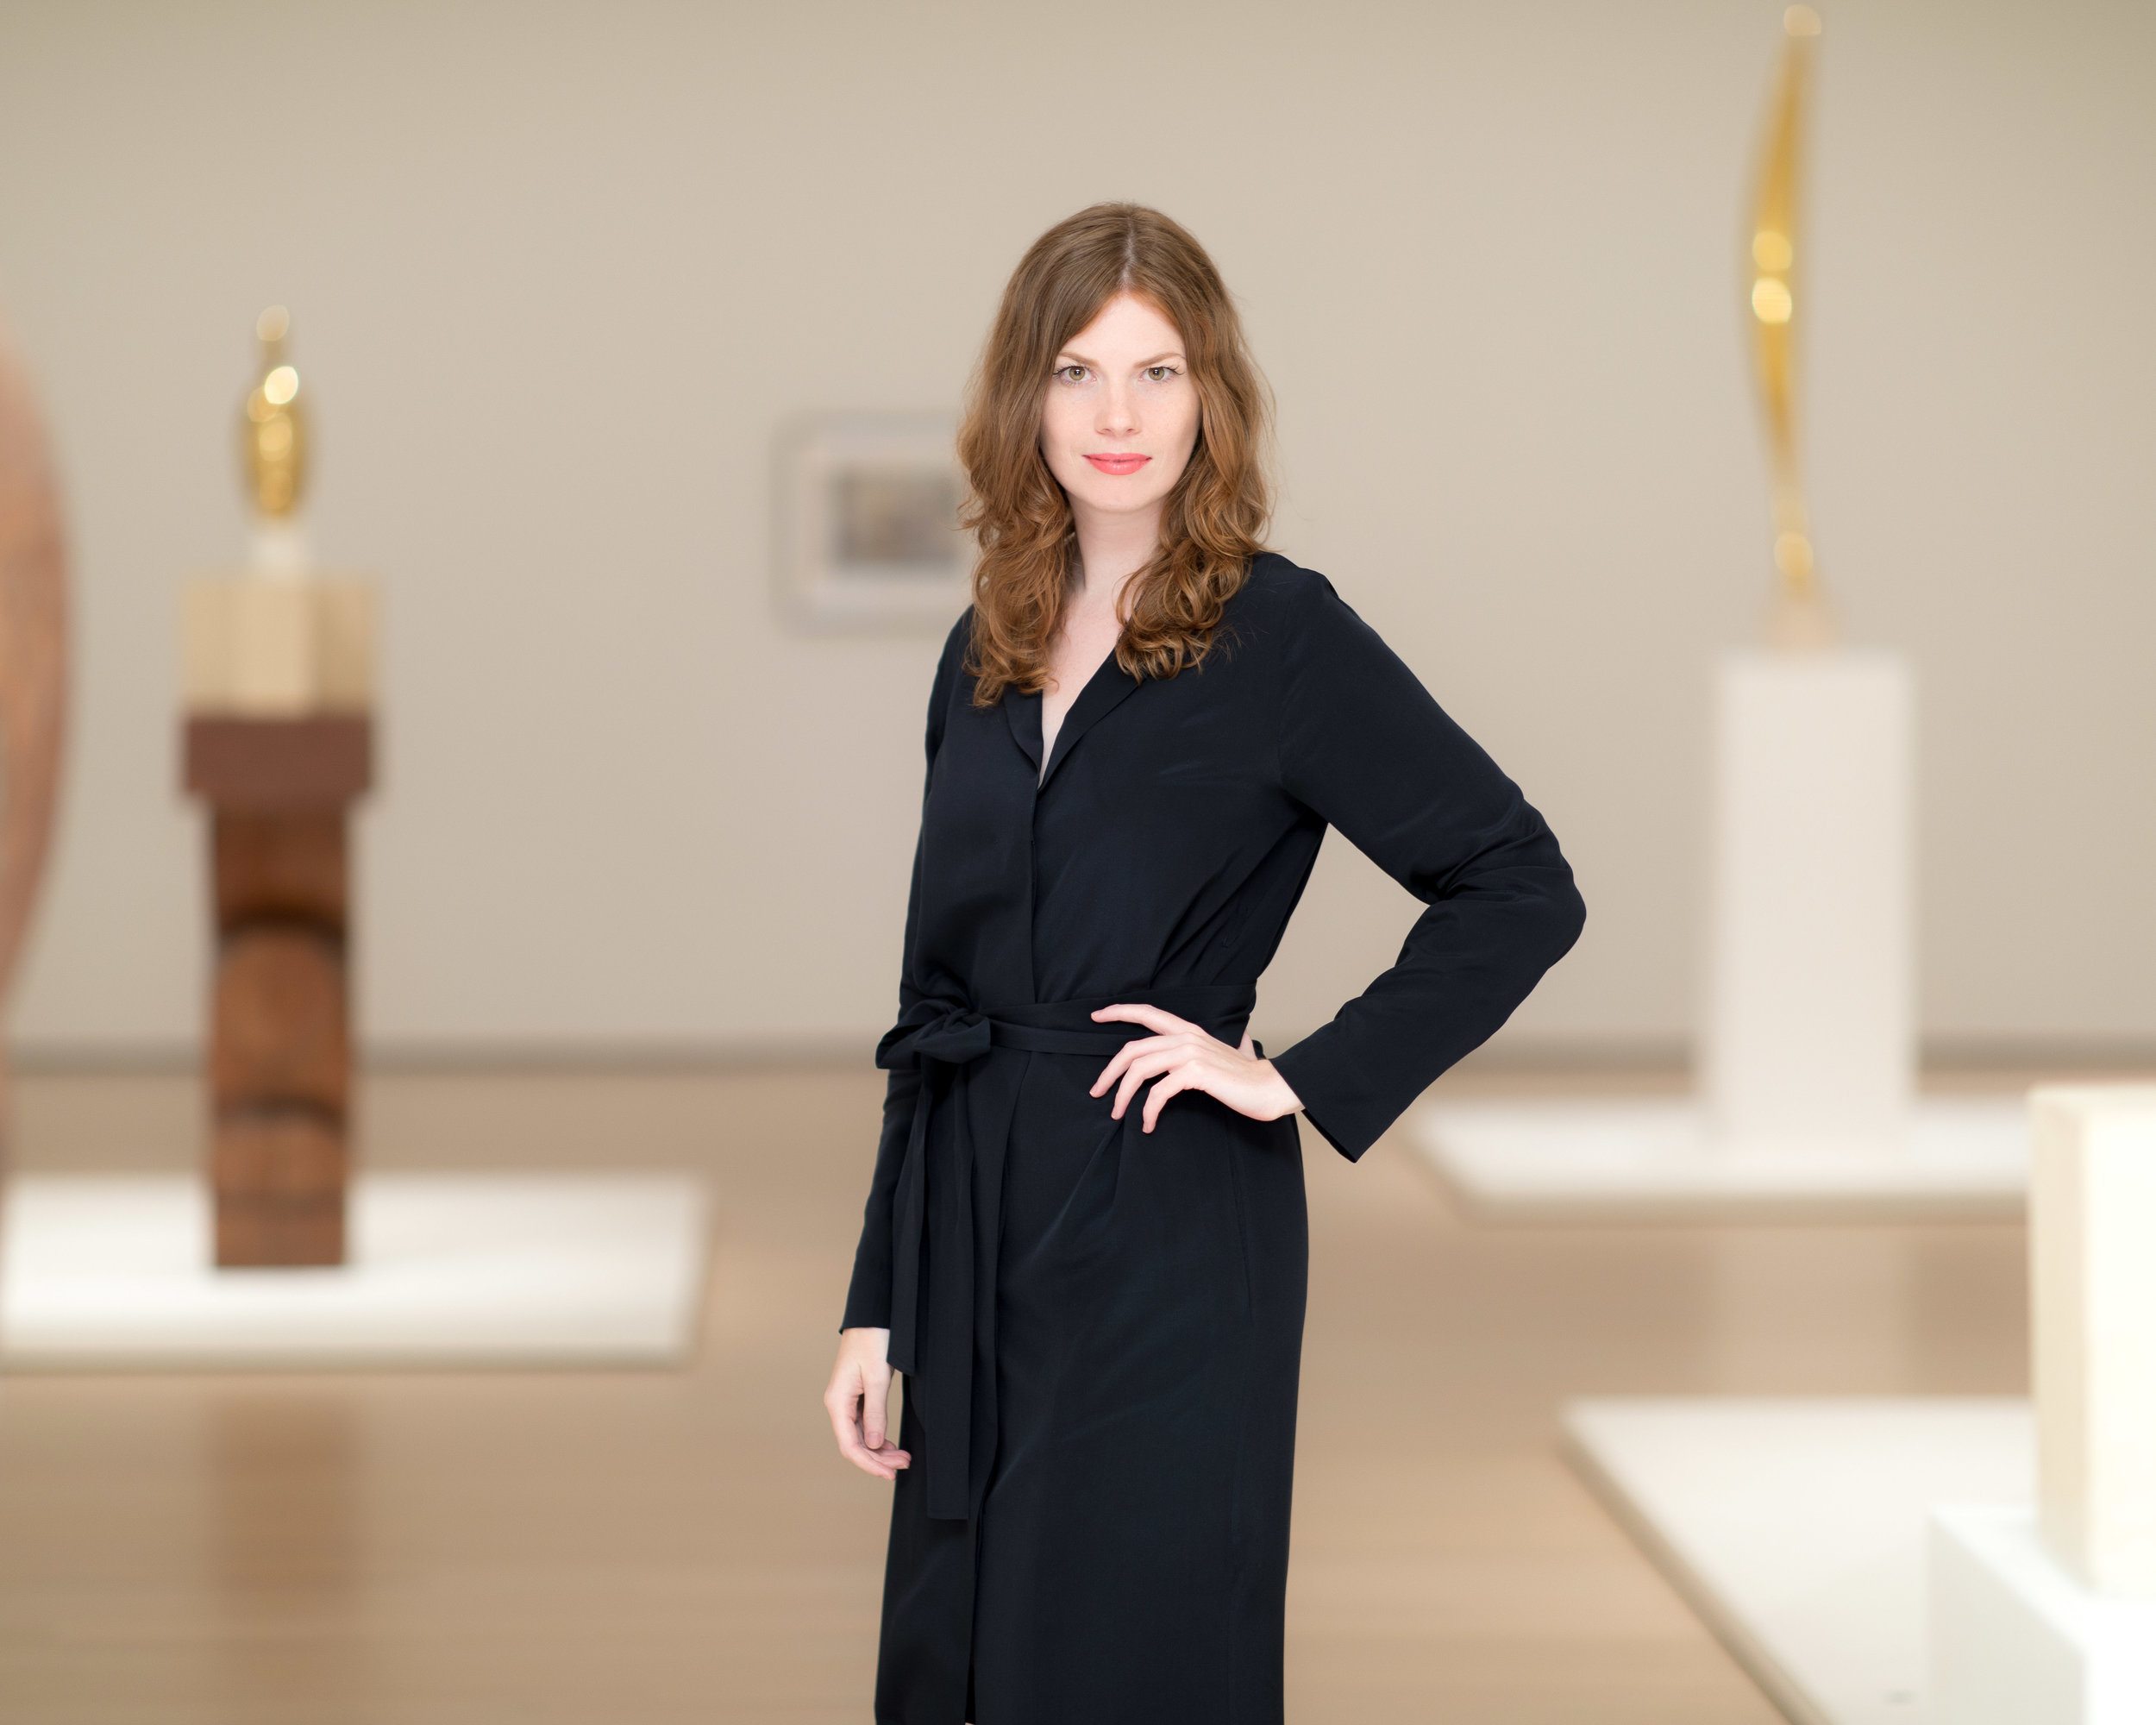 180926_MoMA_MRC_Fellows_0201-Edit.JPG